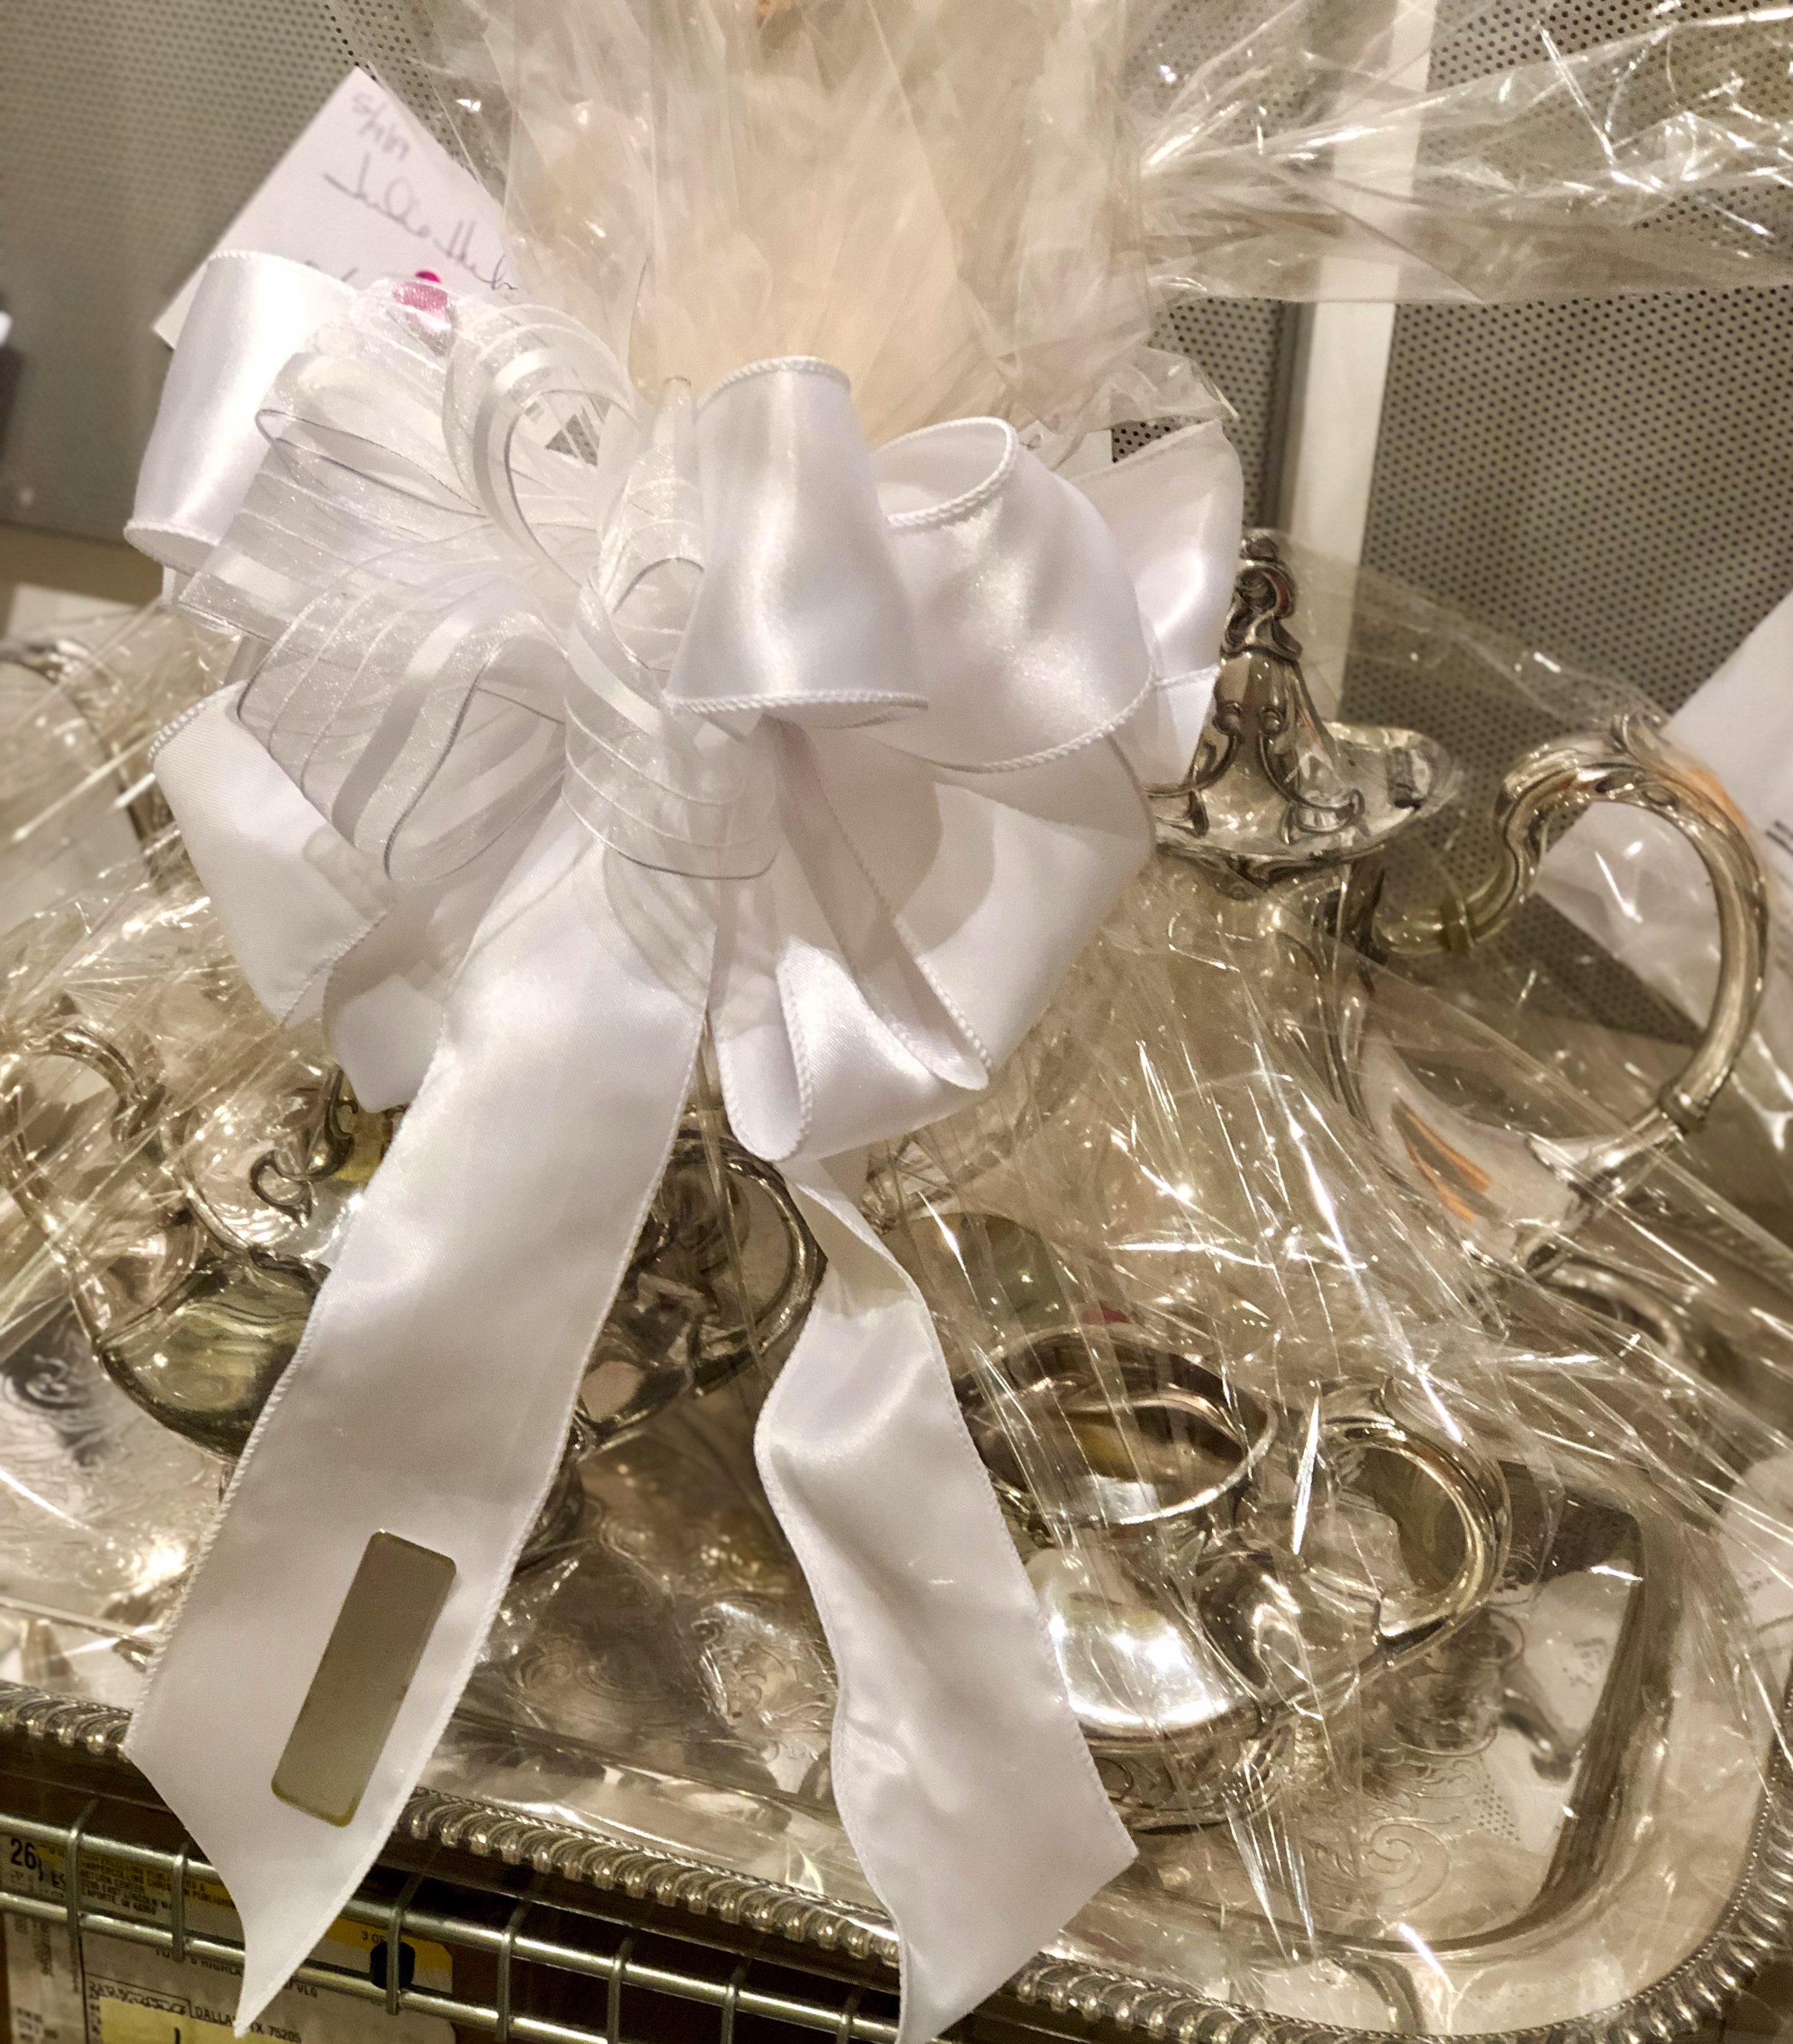 Silver for a special wedding gift